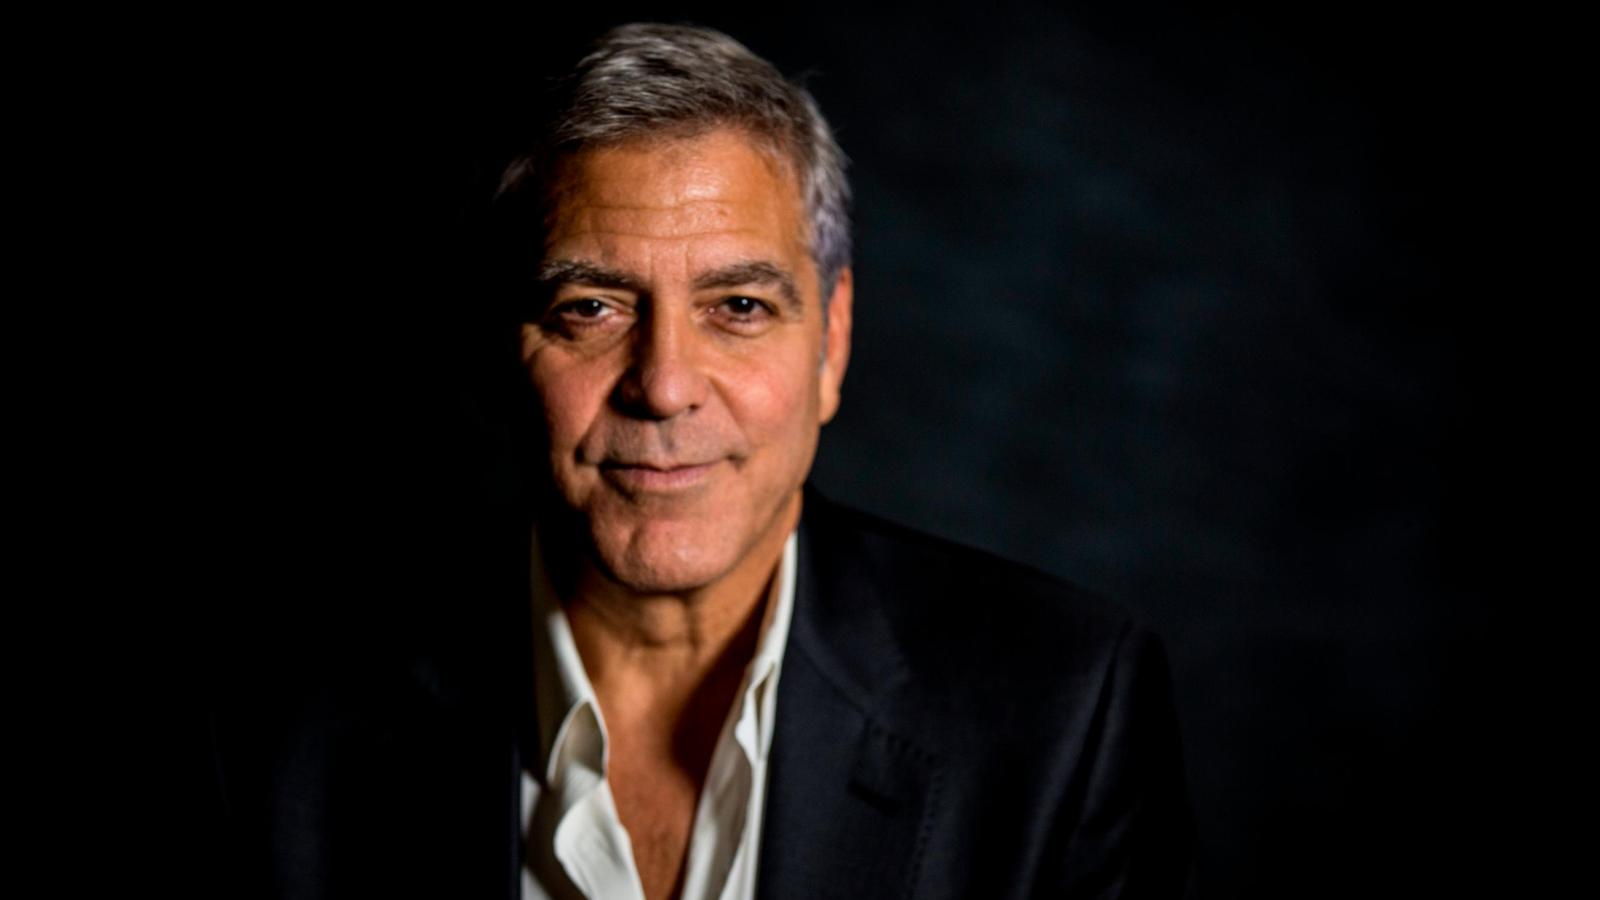 George Clooney pens letter to Parkland students   CNN